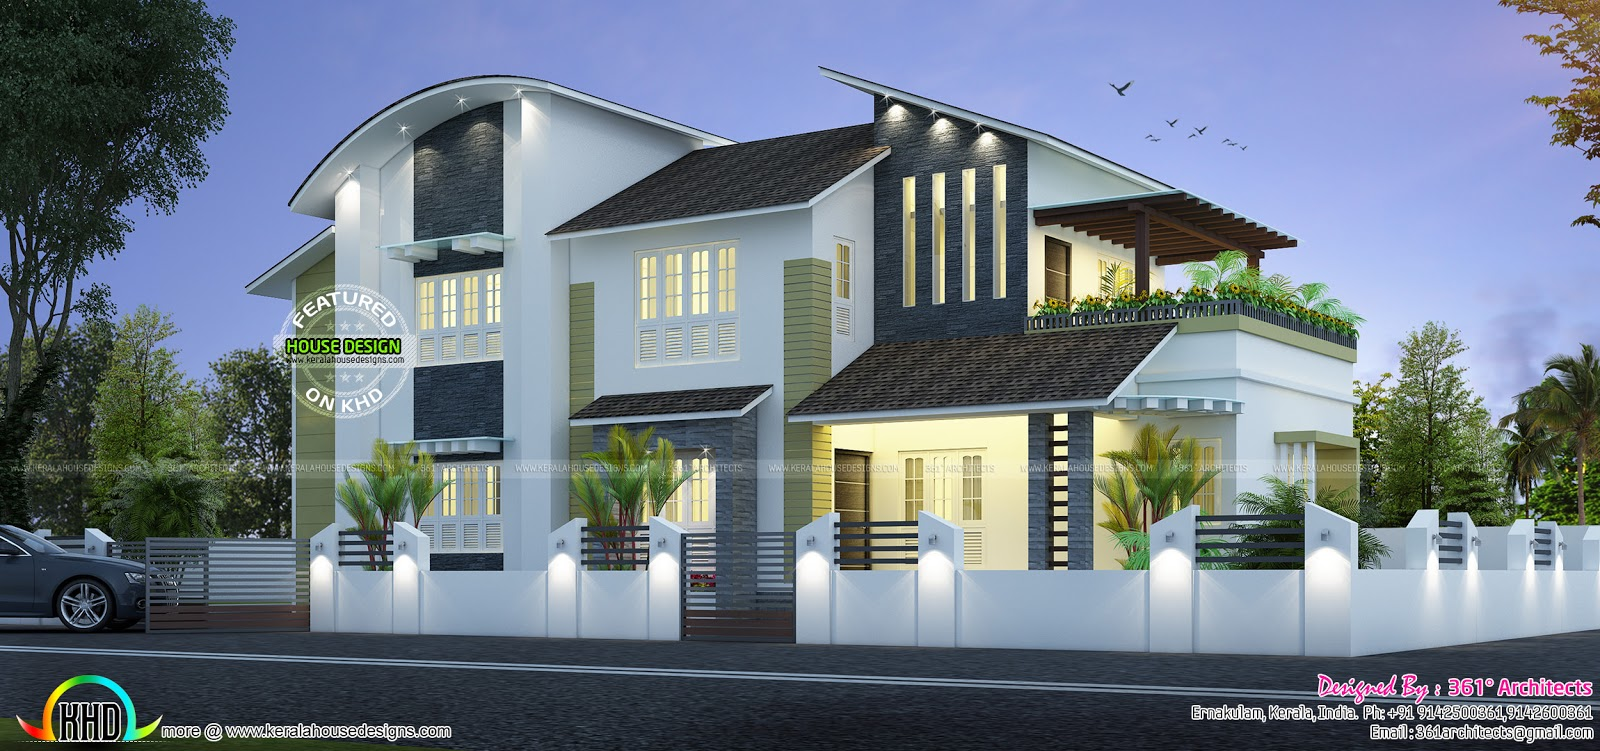 New modern house 35 lakhs kerala home design and floor plans for New home designs